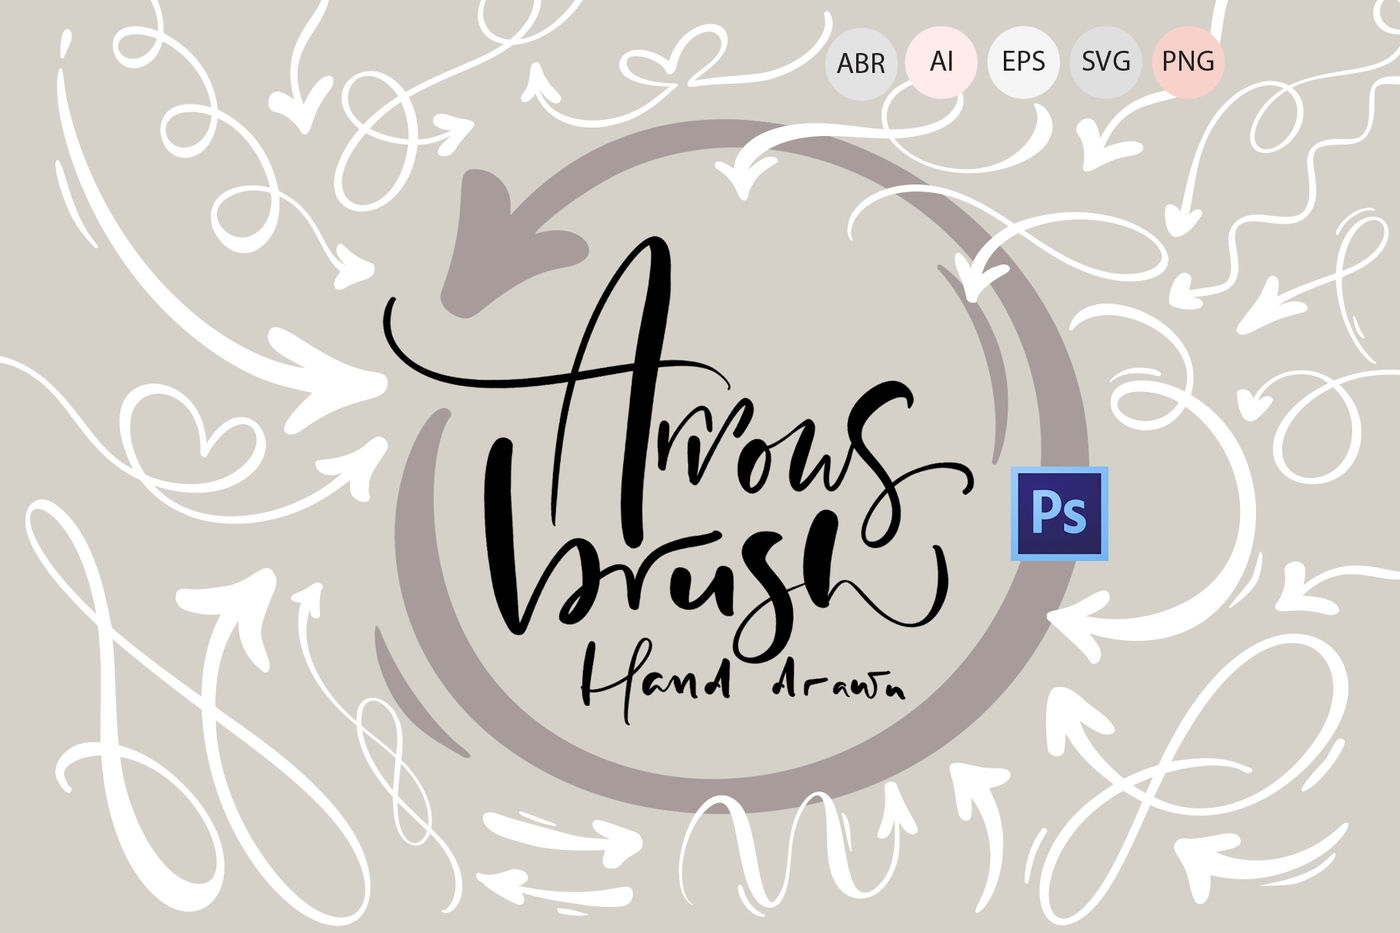 Hand Drawn Arrows Brush By Happy Letters Thehungryjpeg Com